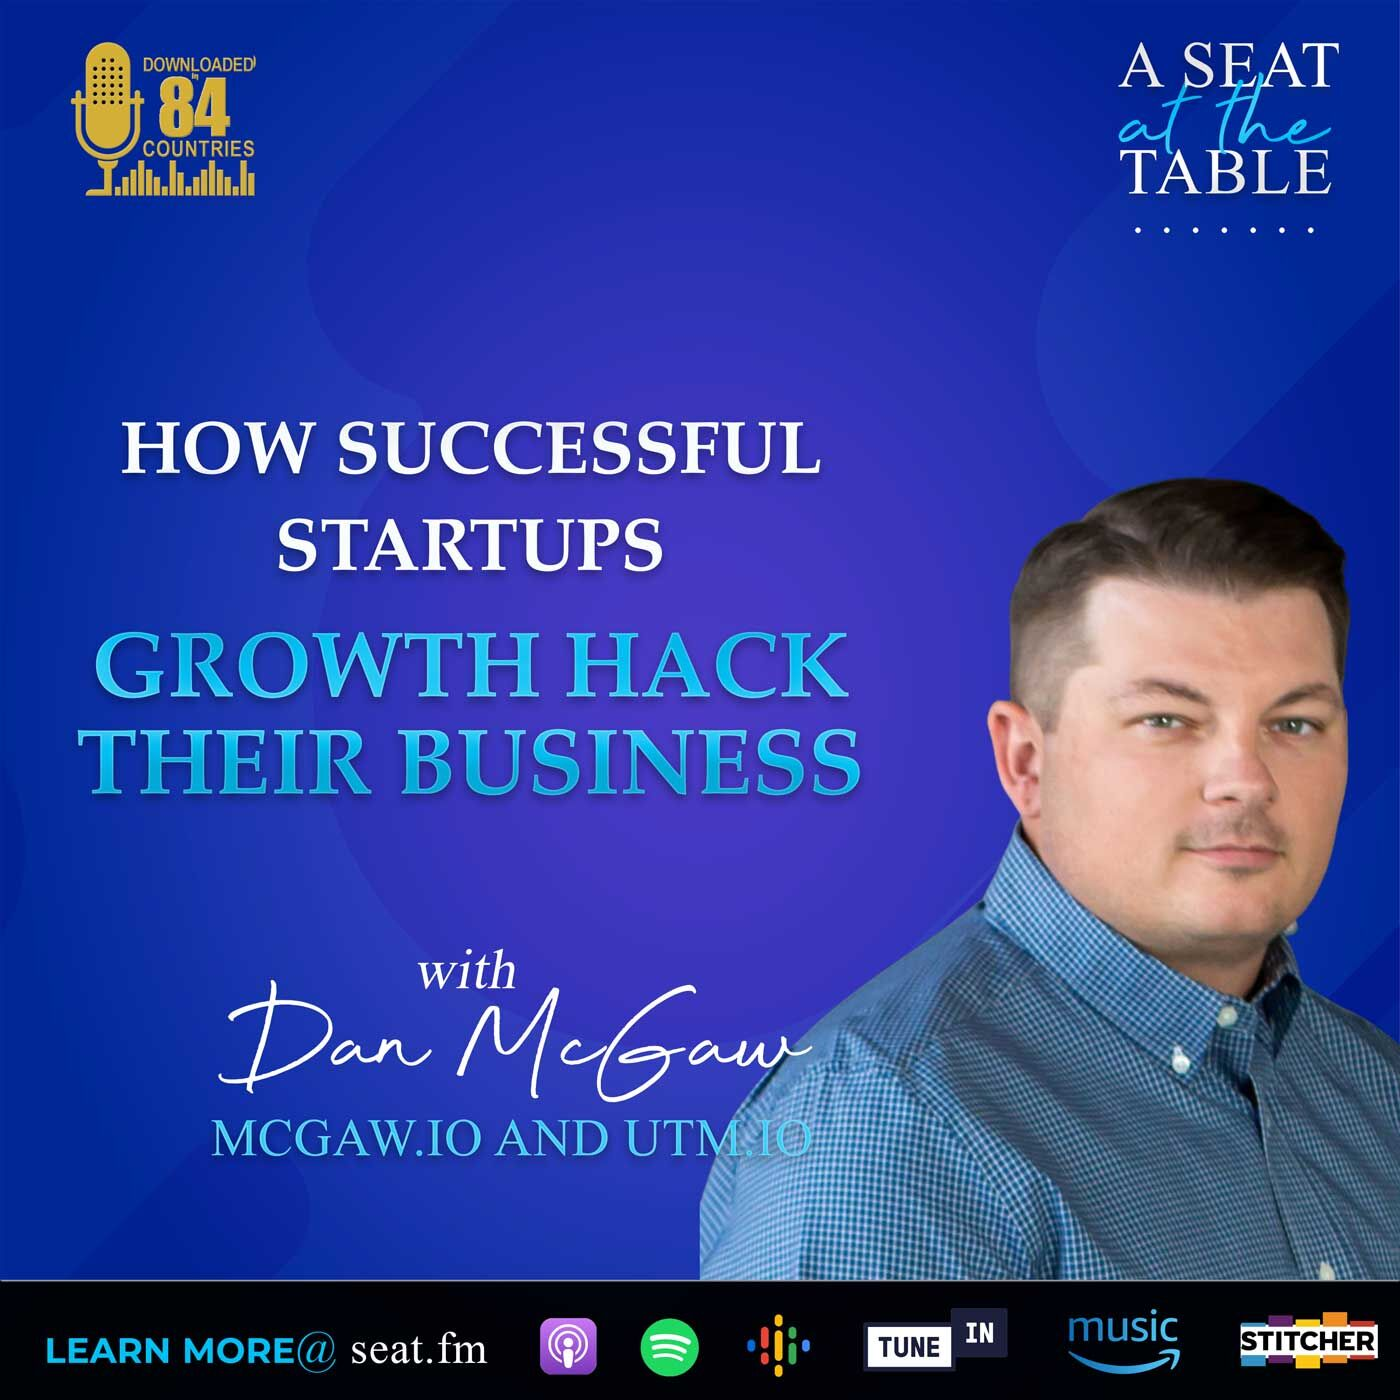 How Successful Startups Growth Hack Their Business